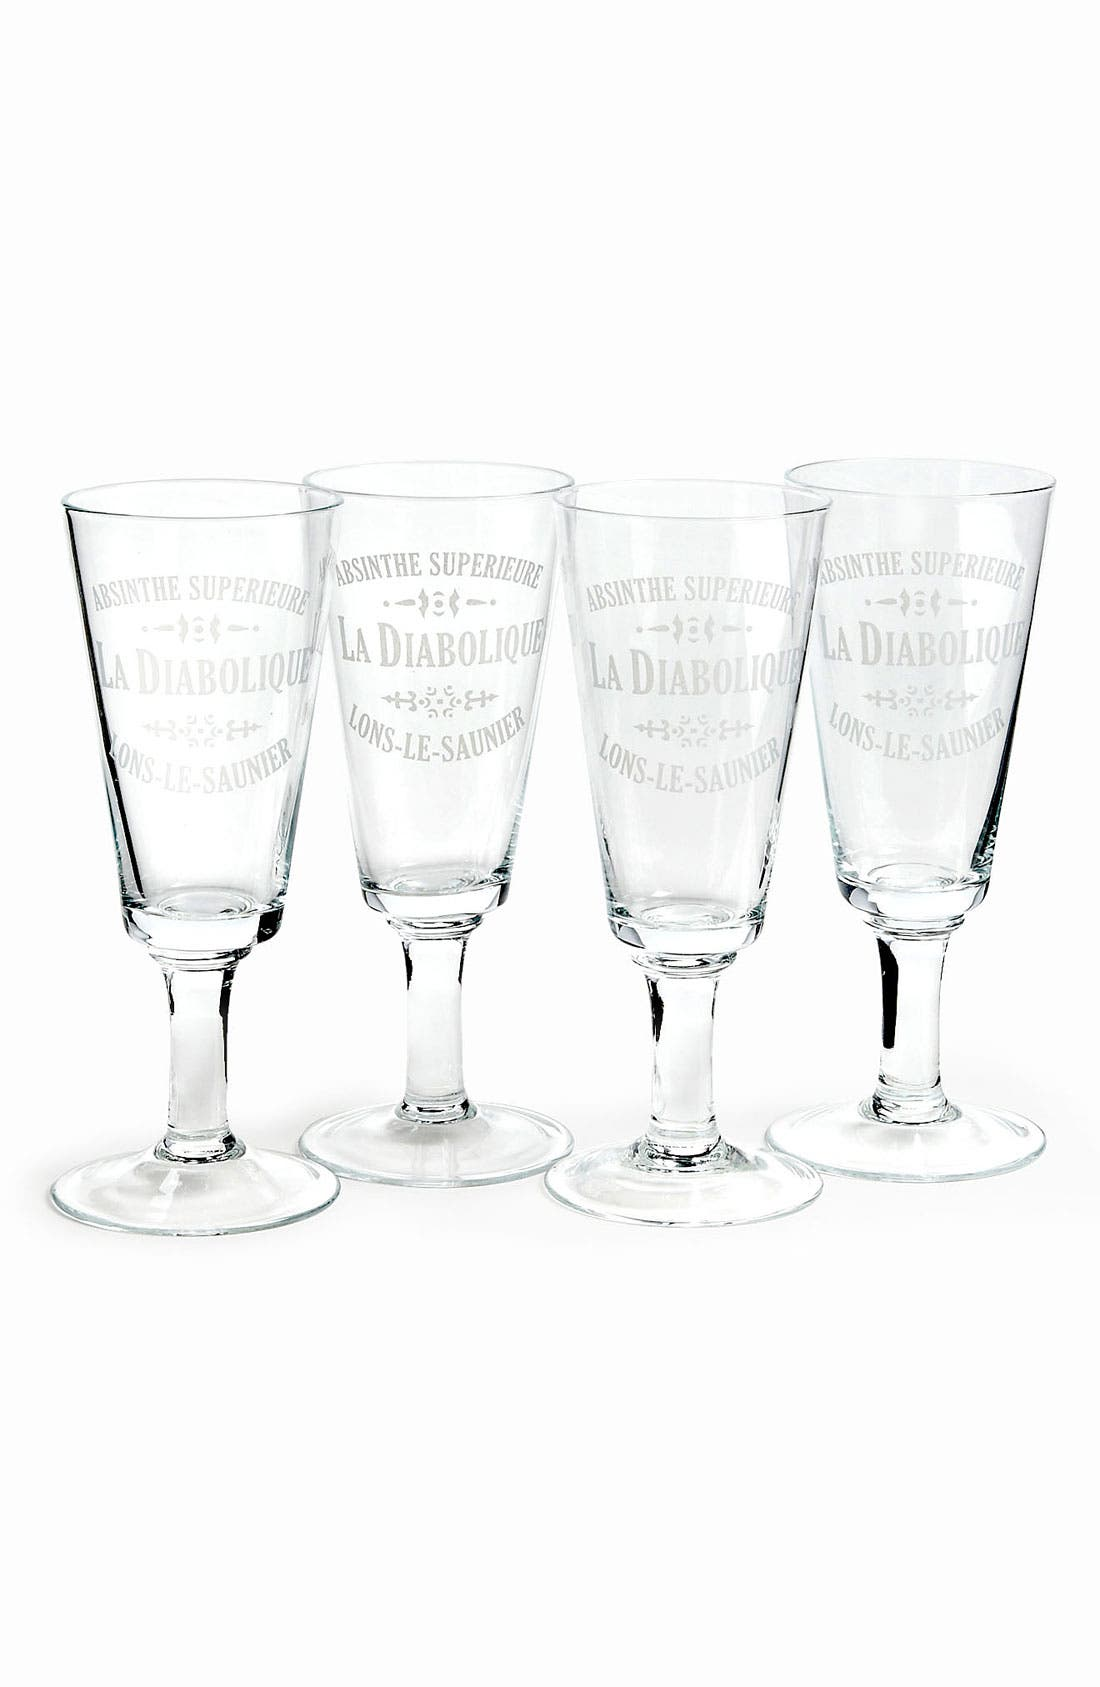 Main Image - 'La Diabolique' Absinthe Glasses (Set of 4)